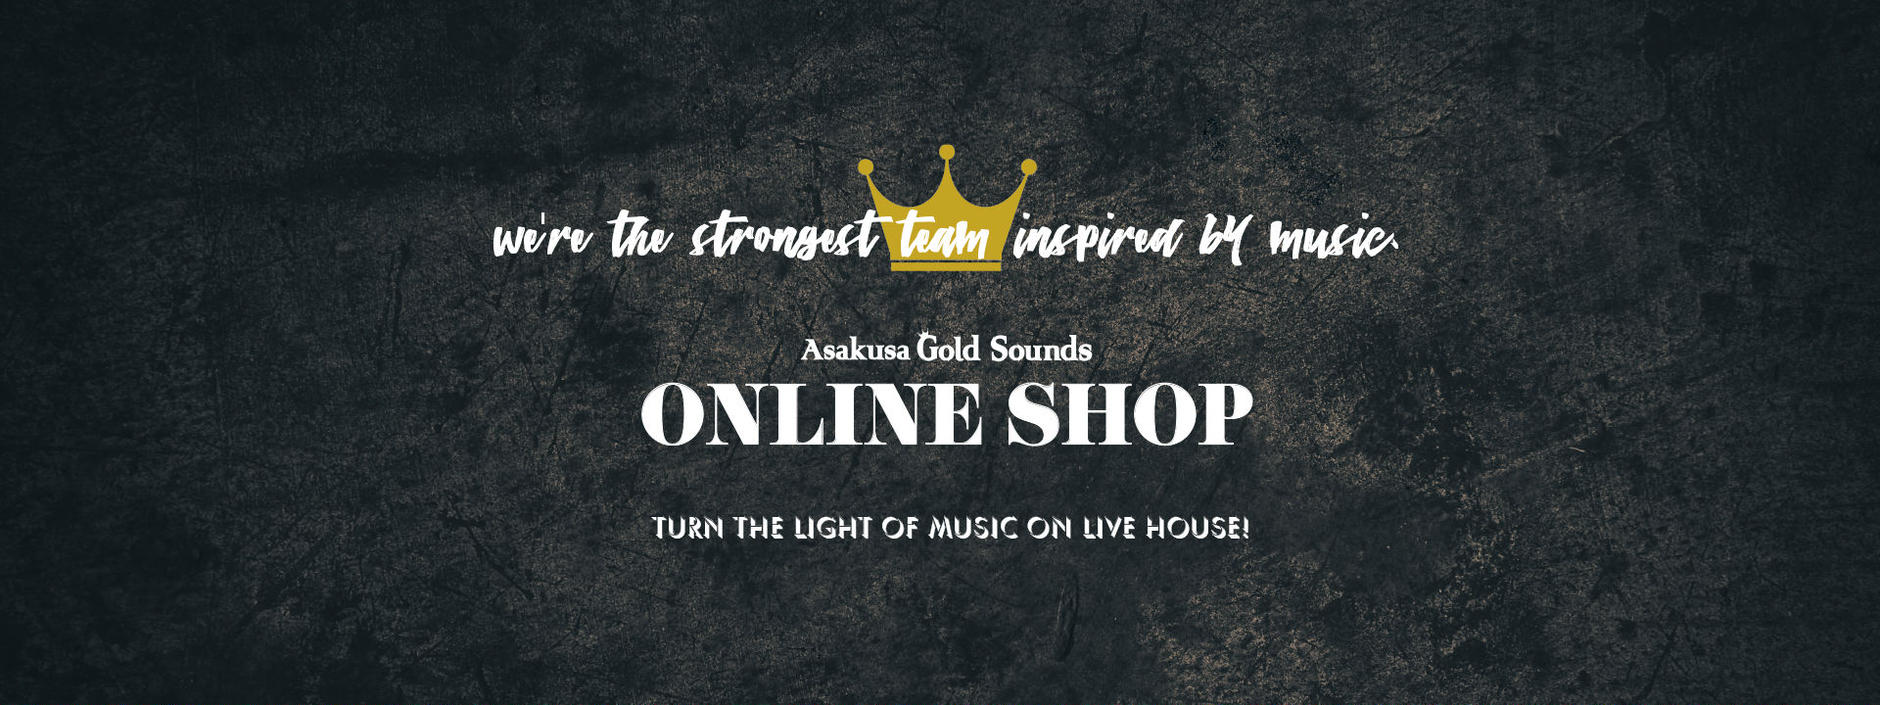 Asakusa Gold Sounds ONLINE SHOP